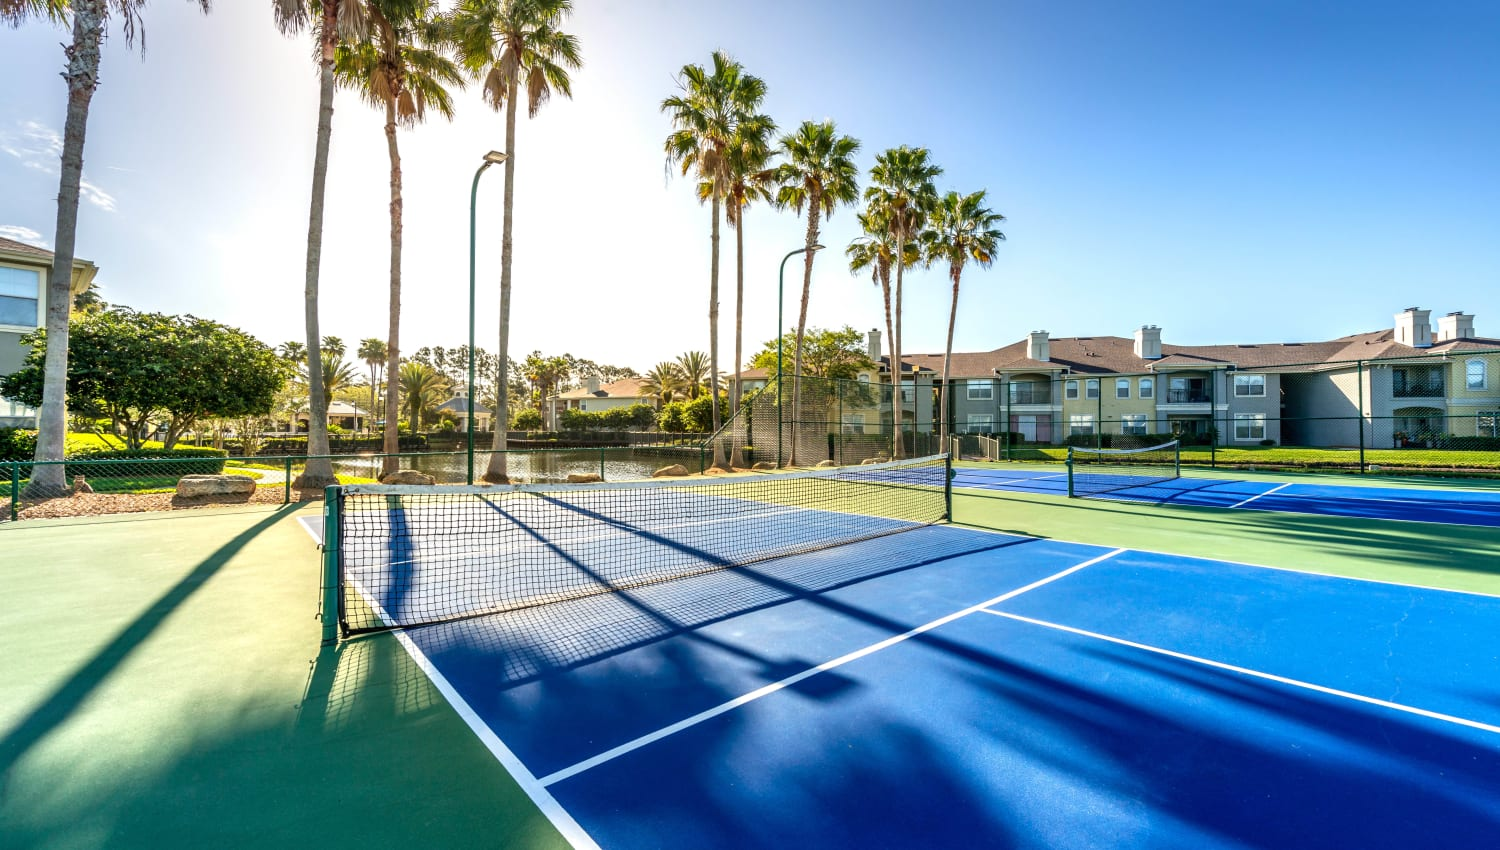 Tennis courts partially shaded by palm trees at Cape House in Jacksonville, Florida